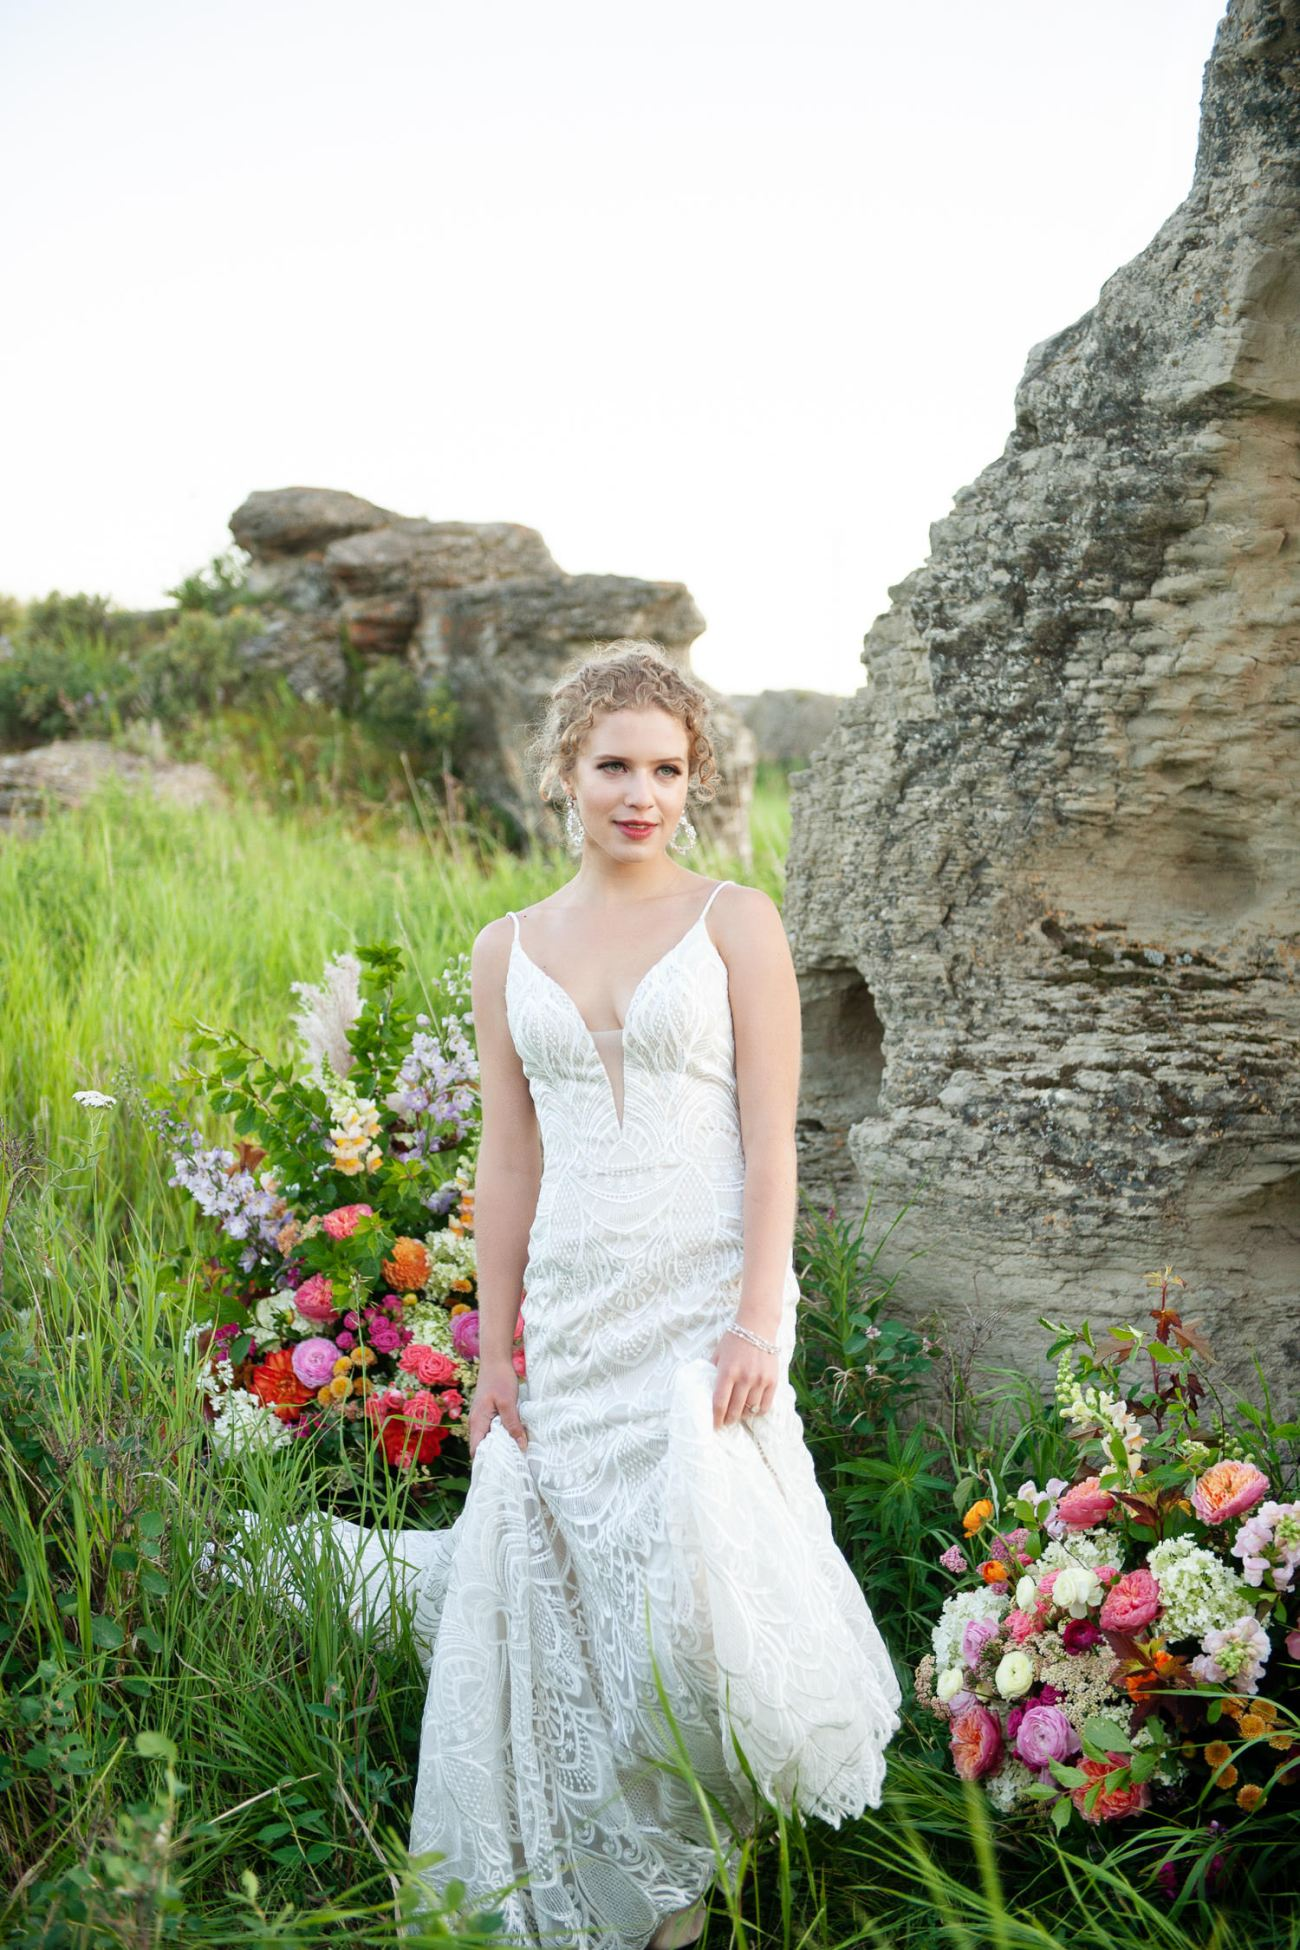 bride stands among her wedding flowers captured by Tara Whittaker Photography